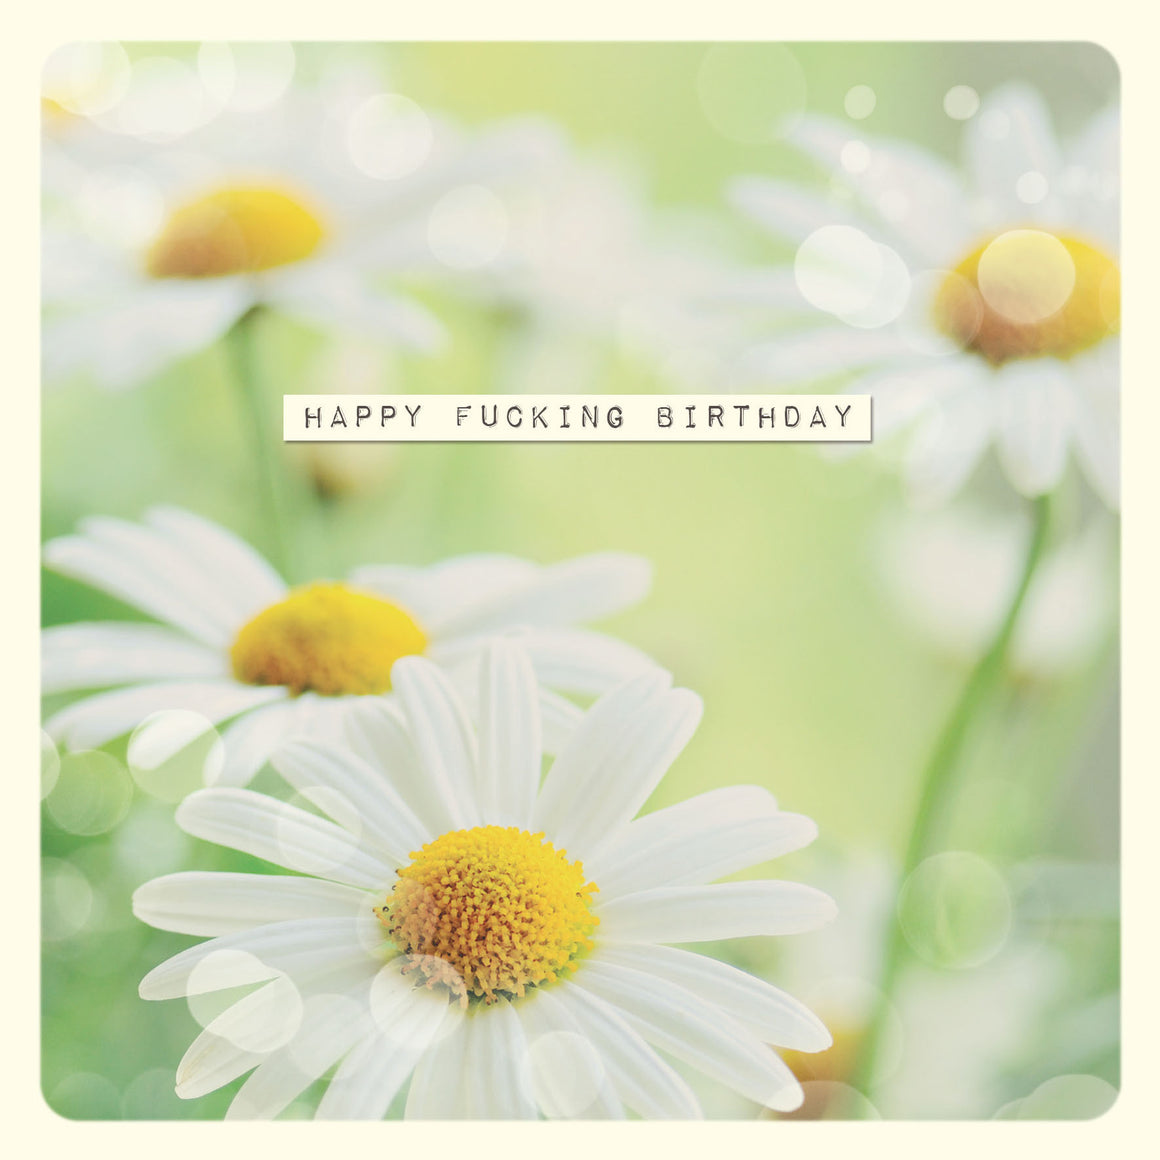 Happy F**king Birthday Greetings Card - The Love Trees